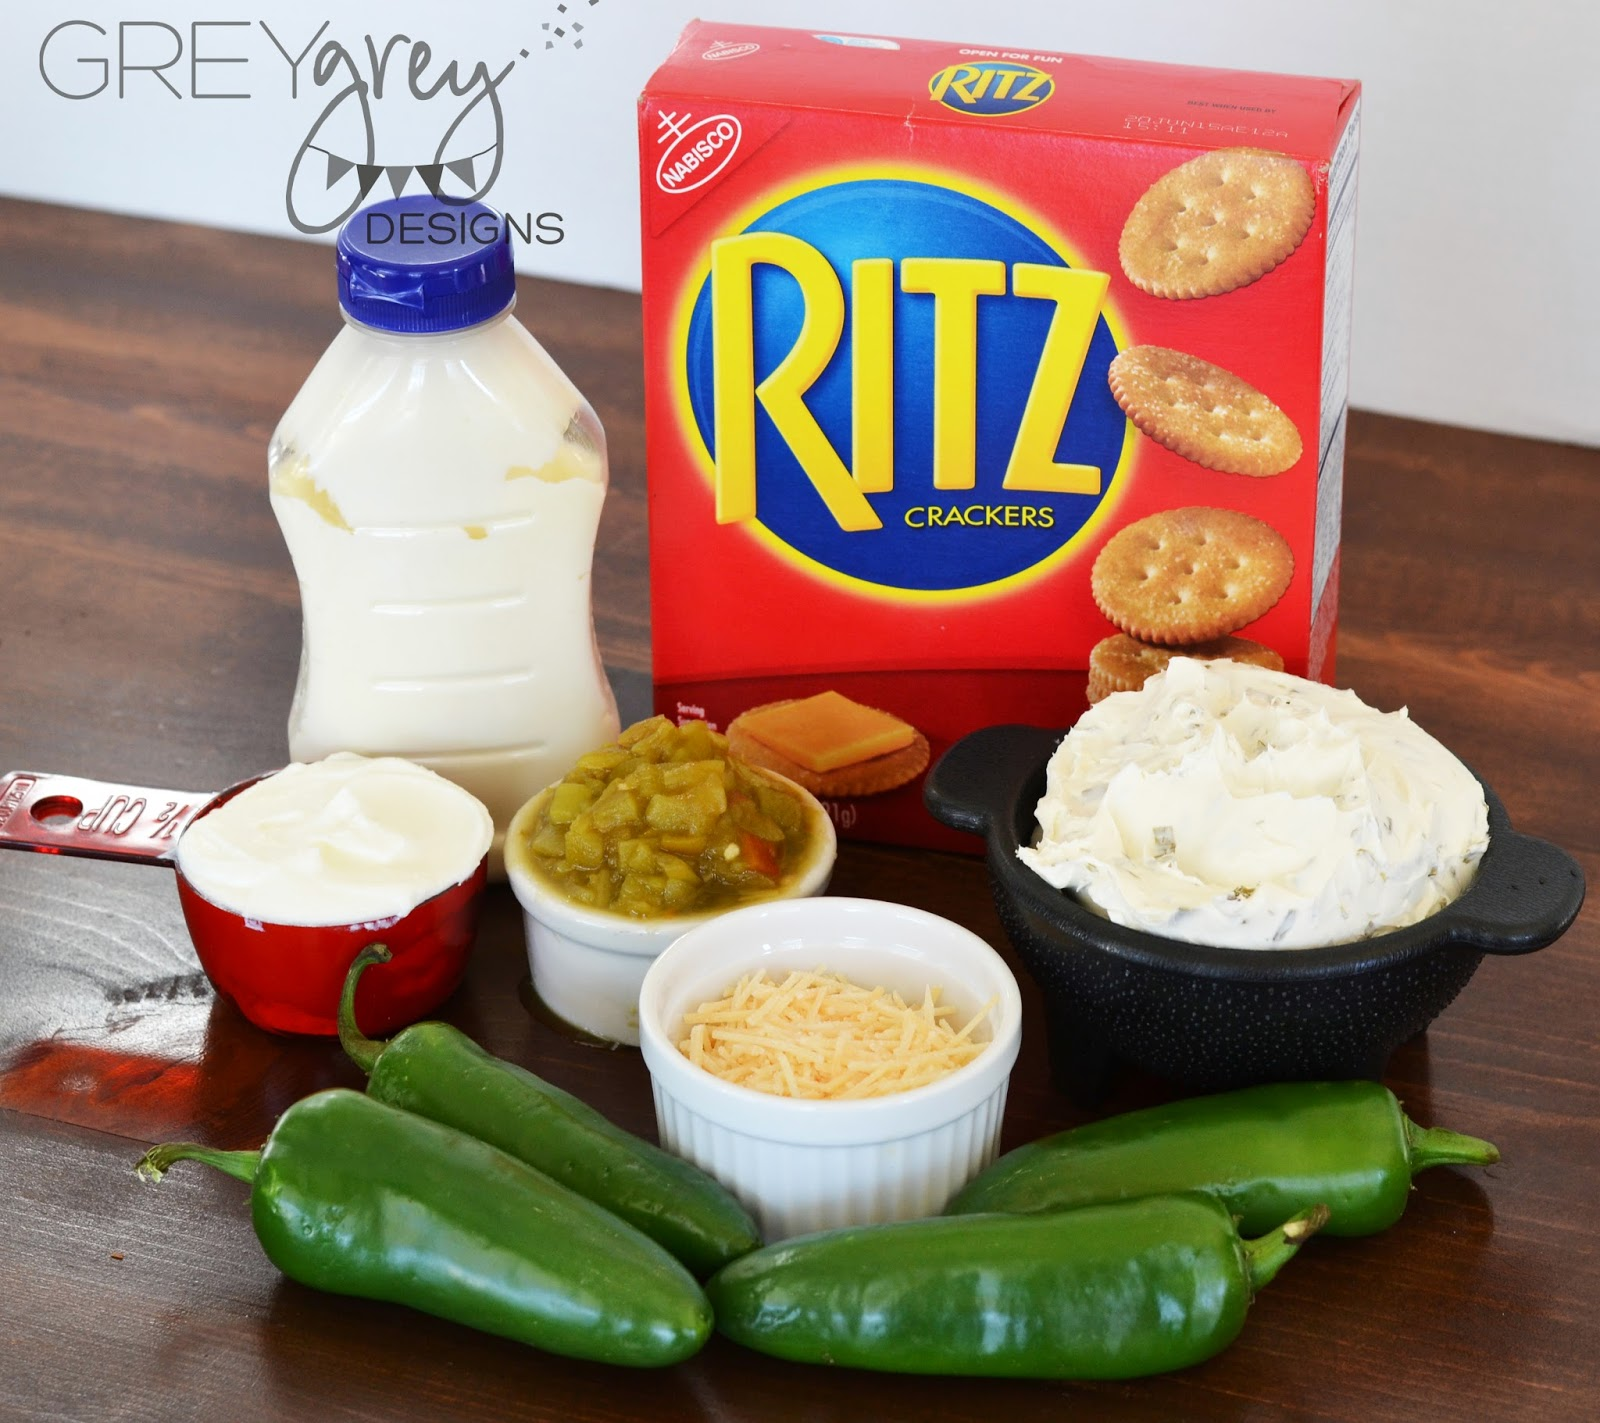 #ritzcrackers #diprecipes #greygreydesigns #preparetoparty #ad #collectivebias